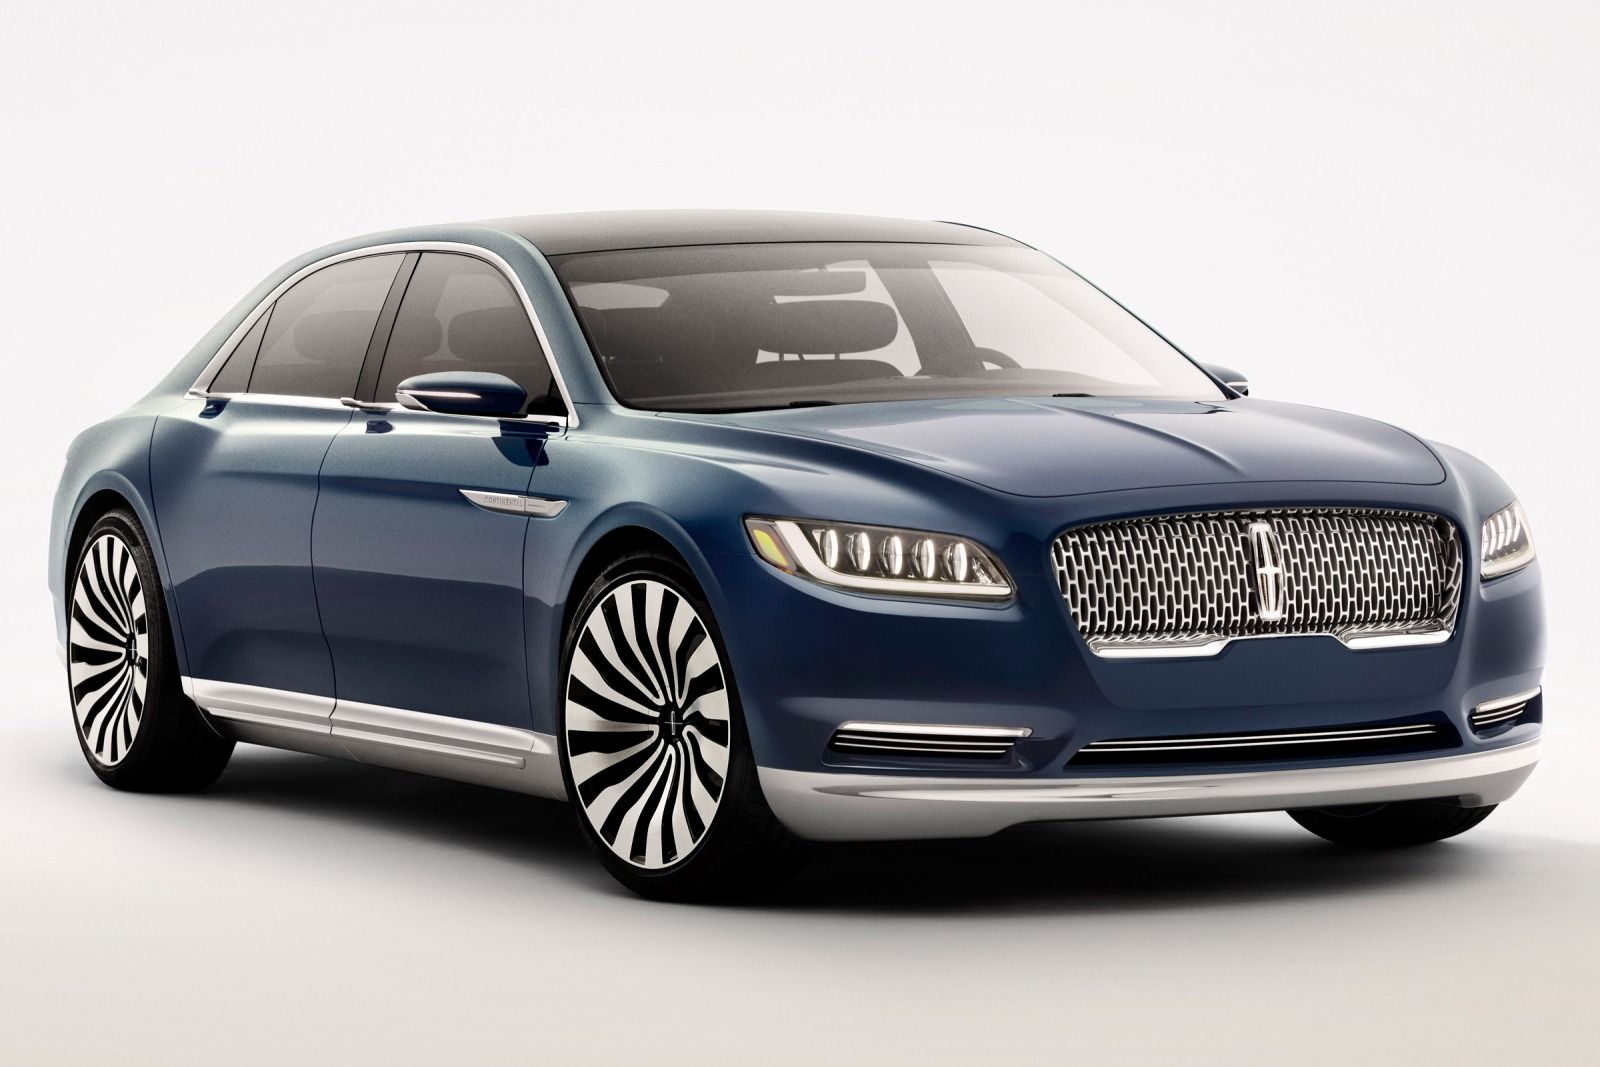 2019 Lincoln Continental Specs